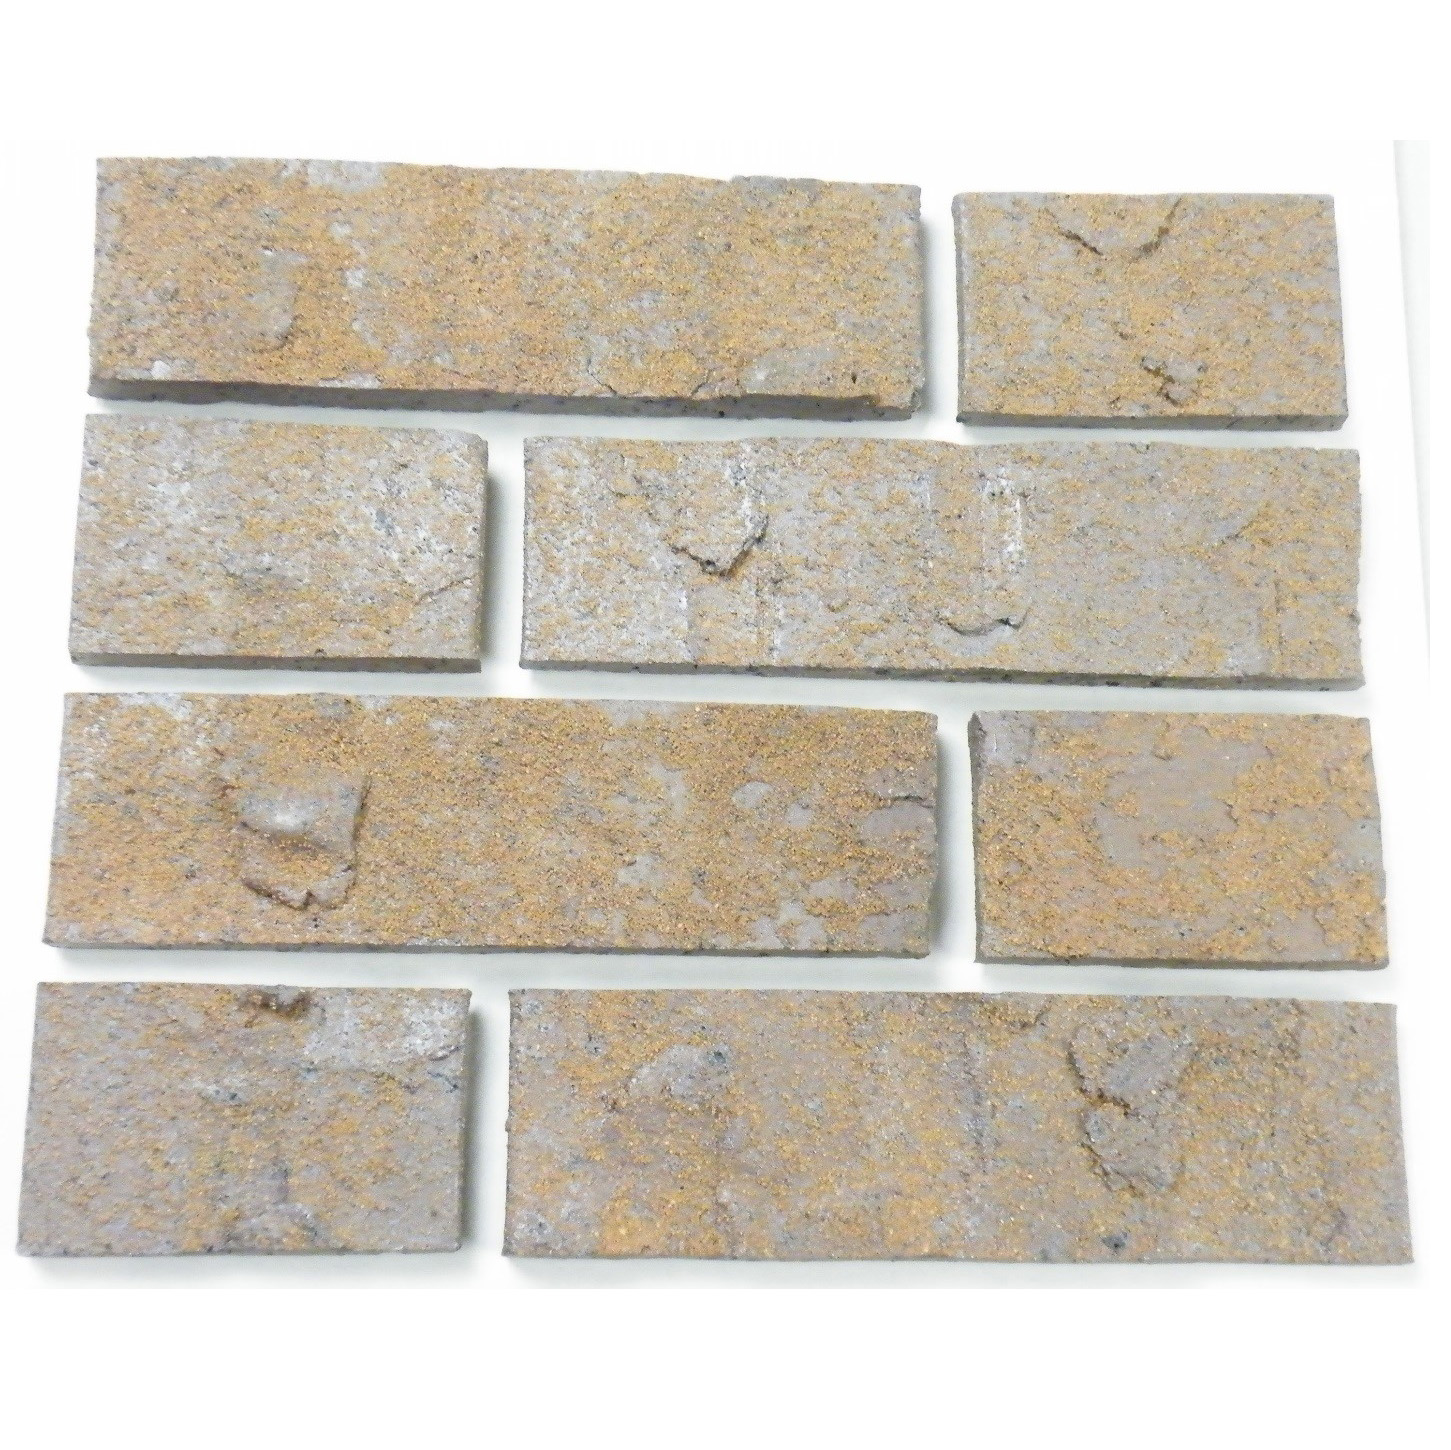 Endicott 4000D Modular Brick, Antique